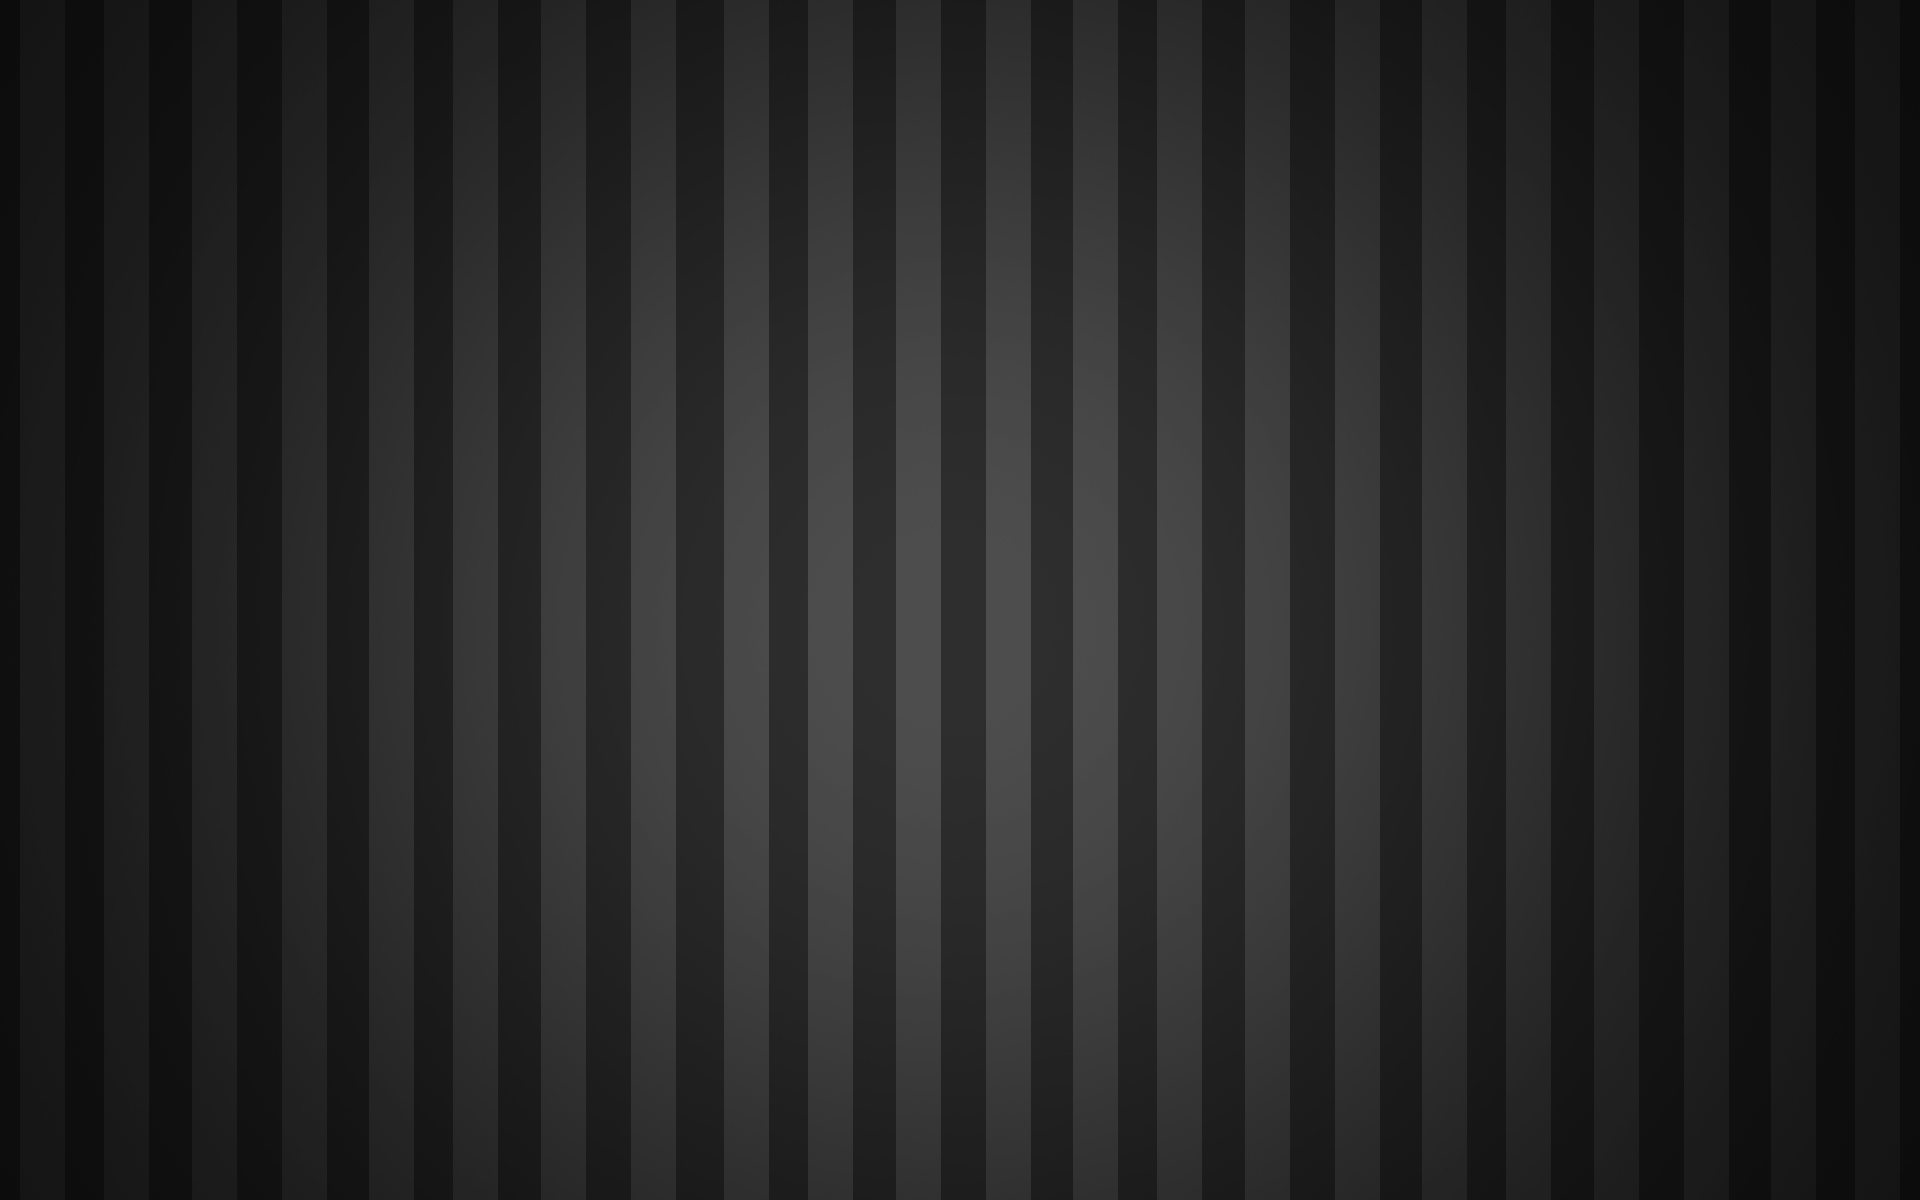 Minimalistic Gray Wallpaper 1920x1200 Minimalistic Gray Patterns 1920x1200